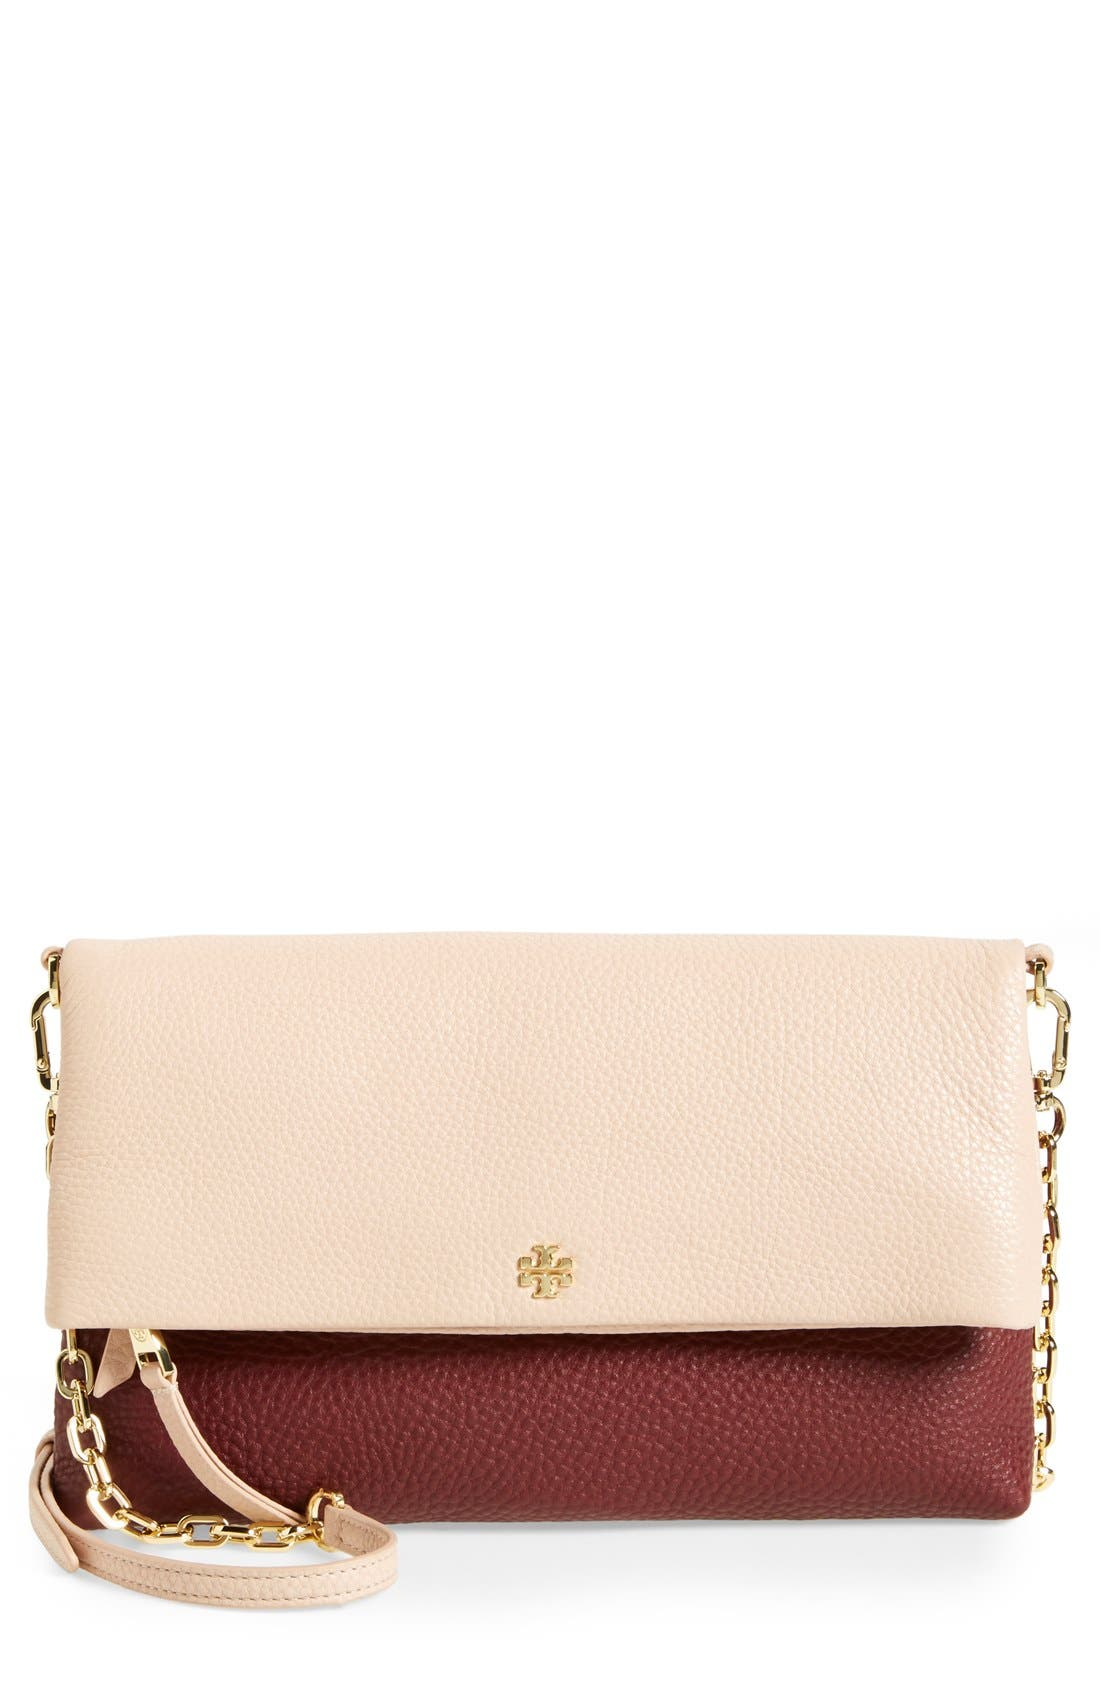 Alternate Image 1 Selected - Tory Burch Foldover Crossbody Bag